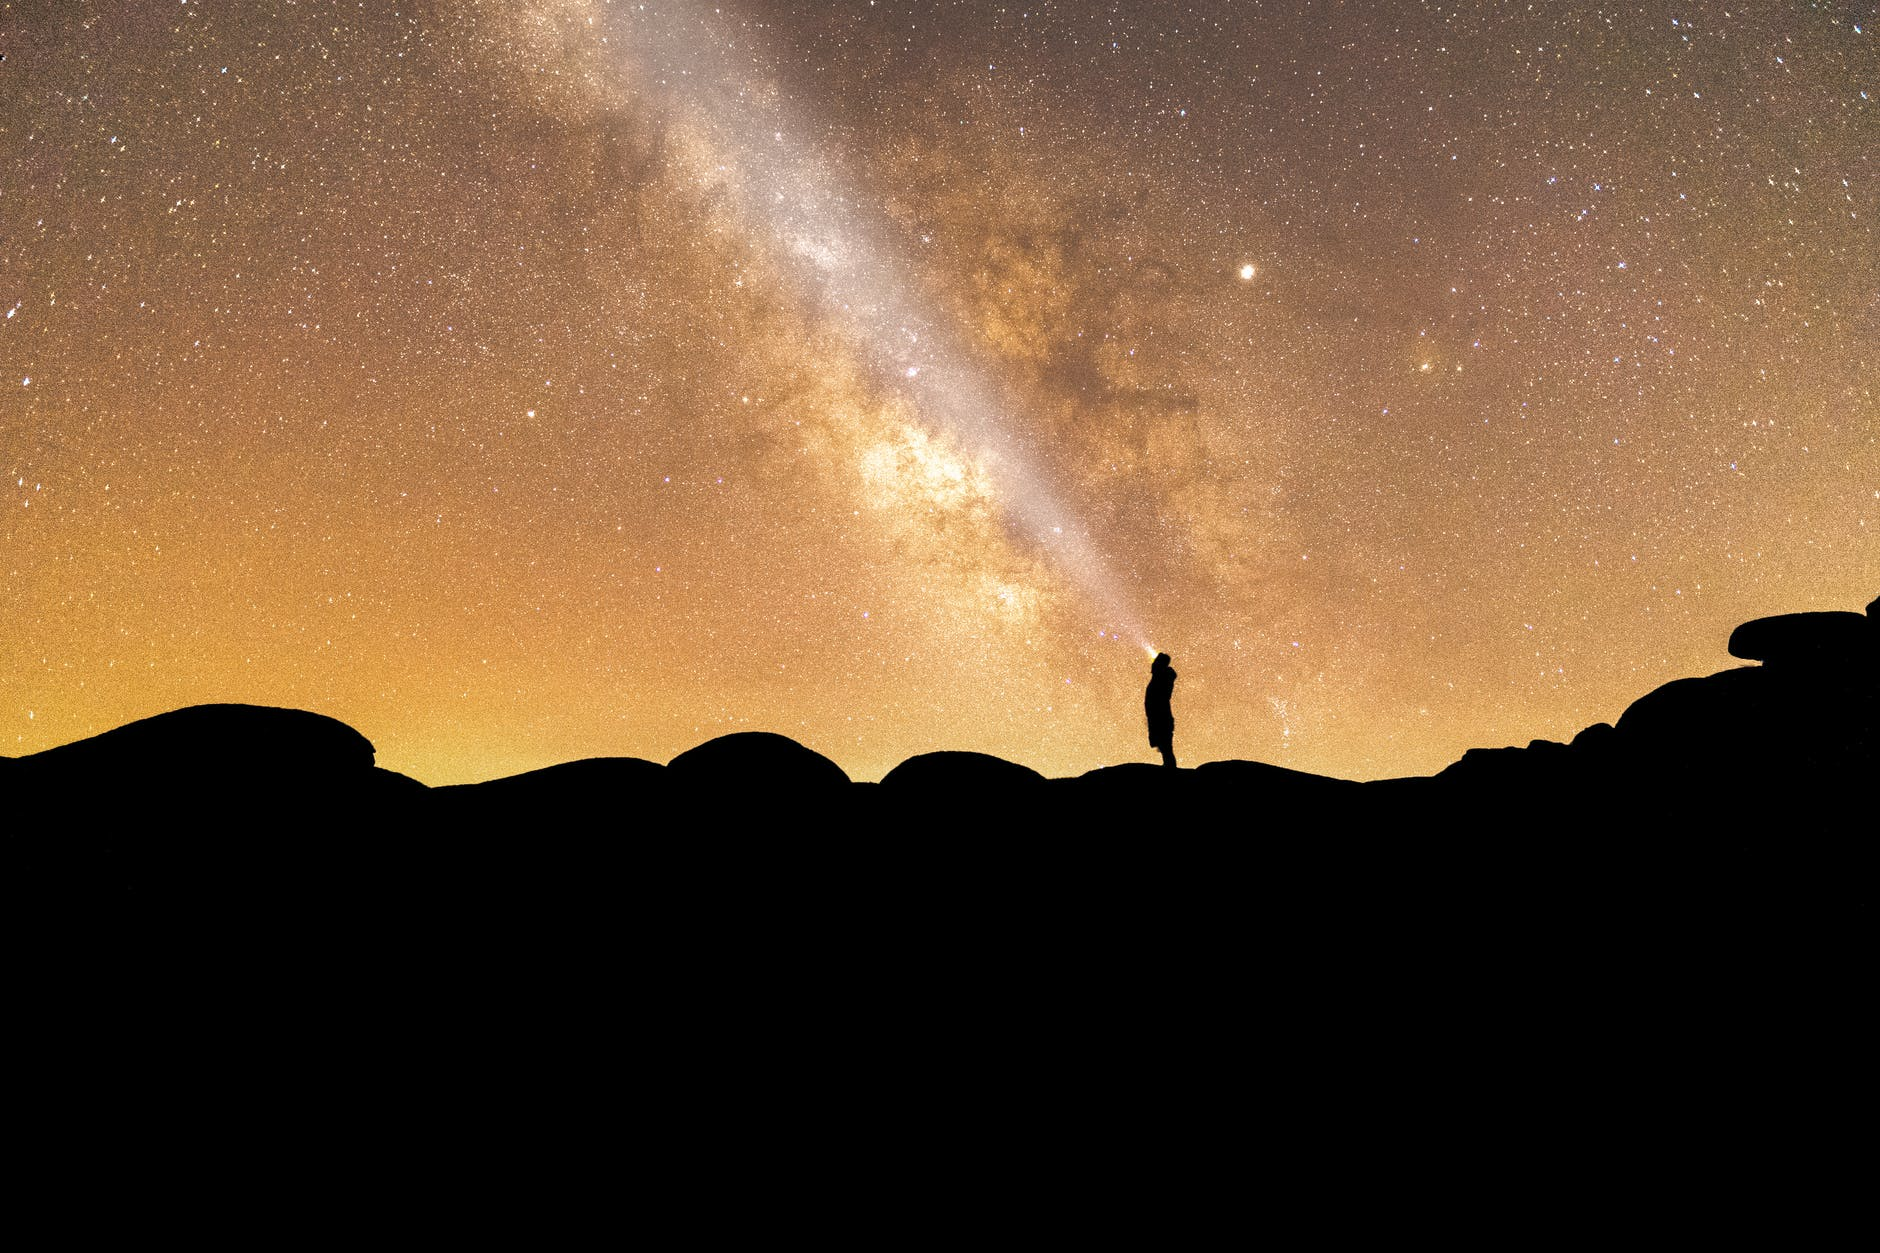 silhouette of person standing on rock formation under starry sky